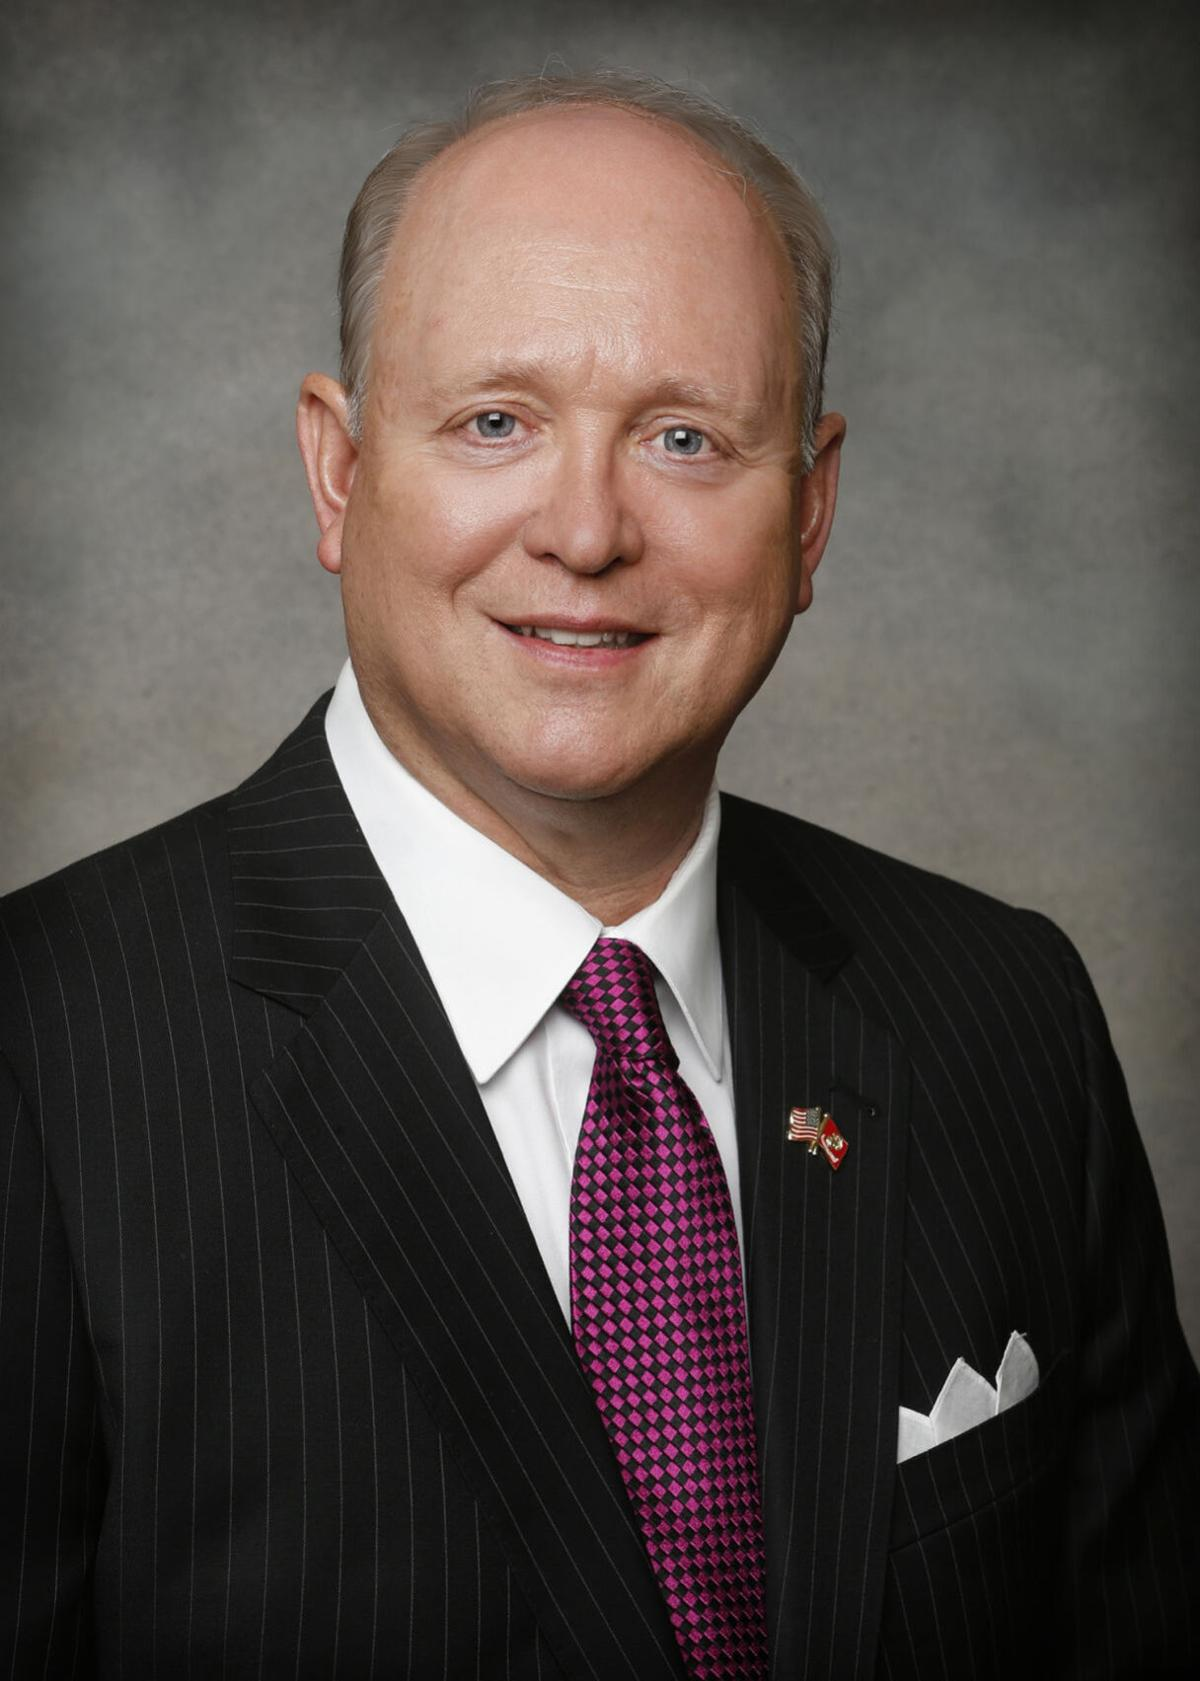 Don Hall is president and CEO of the Virginia Automobile Dealers Association